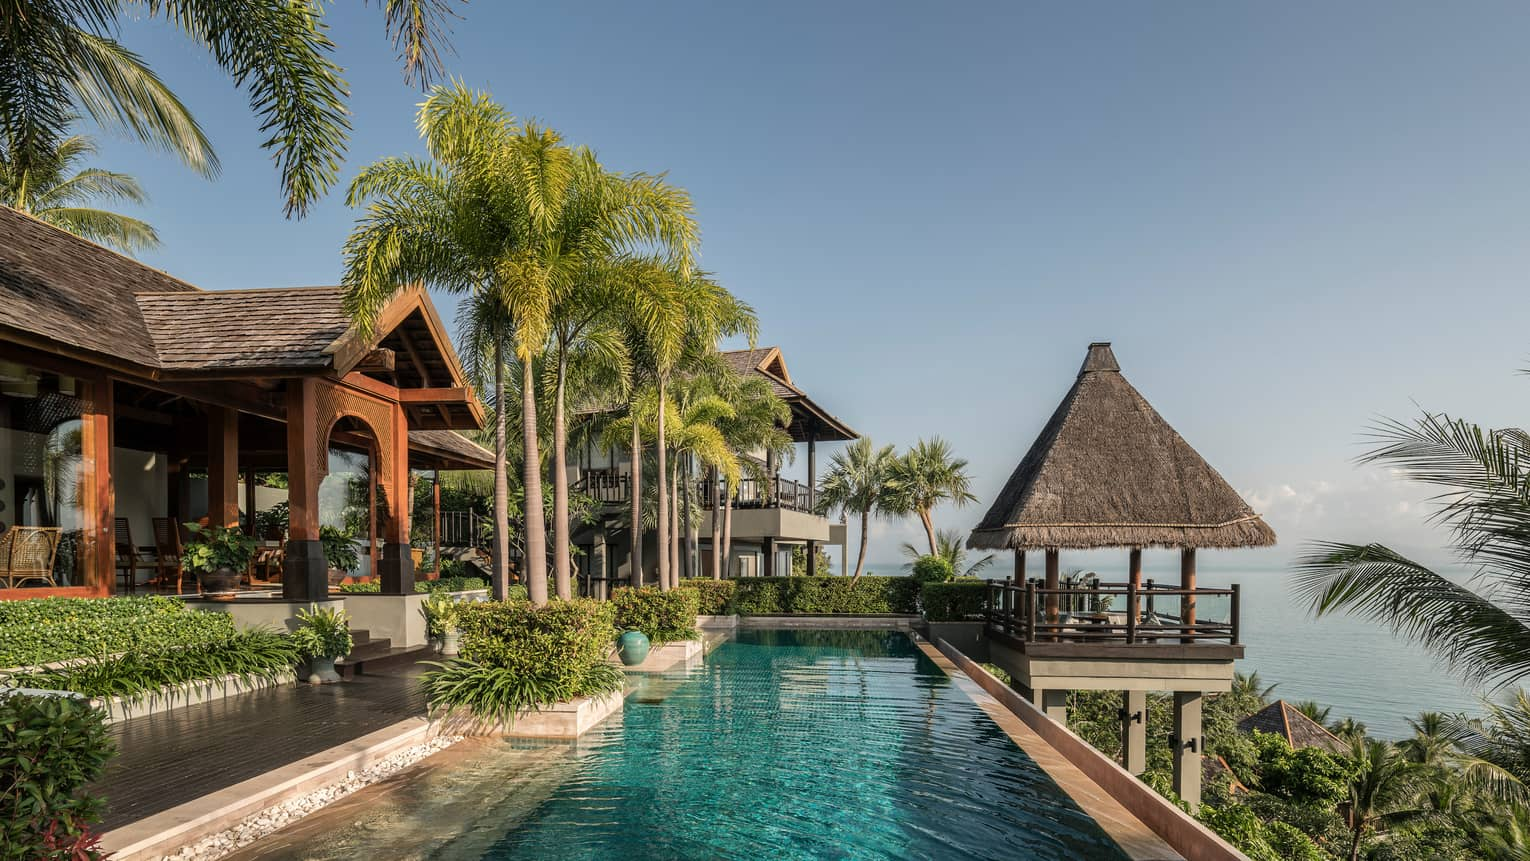 Long outdoor swimming pool under tall palm trees, thatched roof gazebo